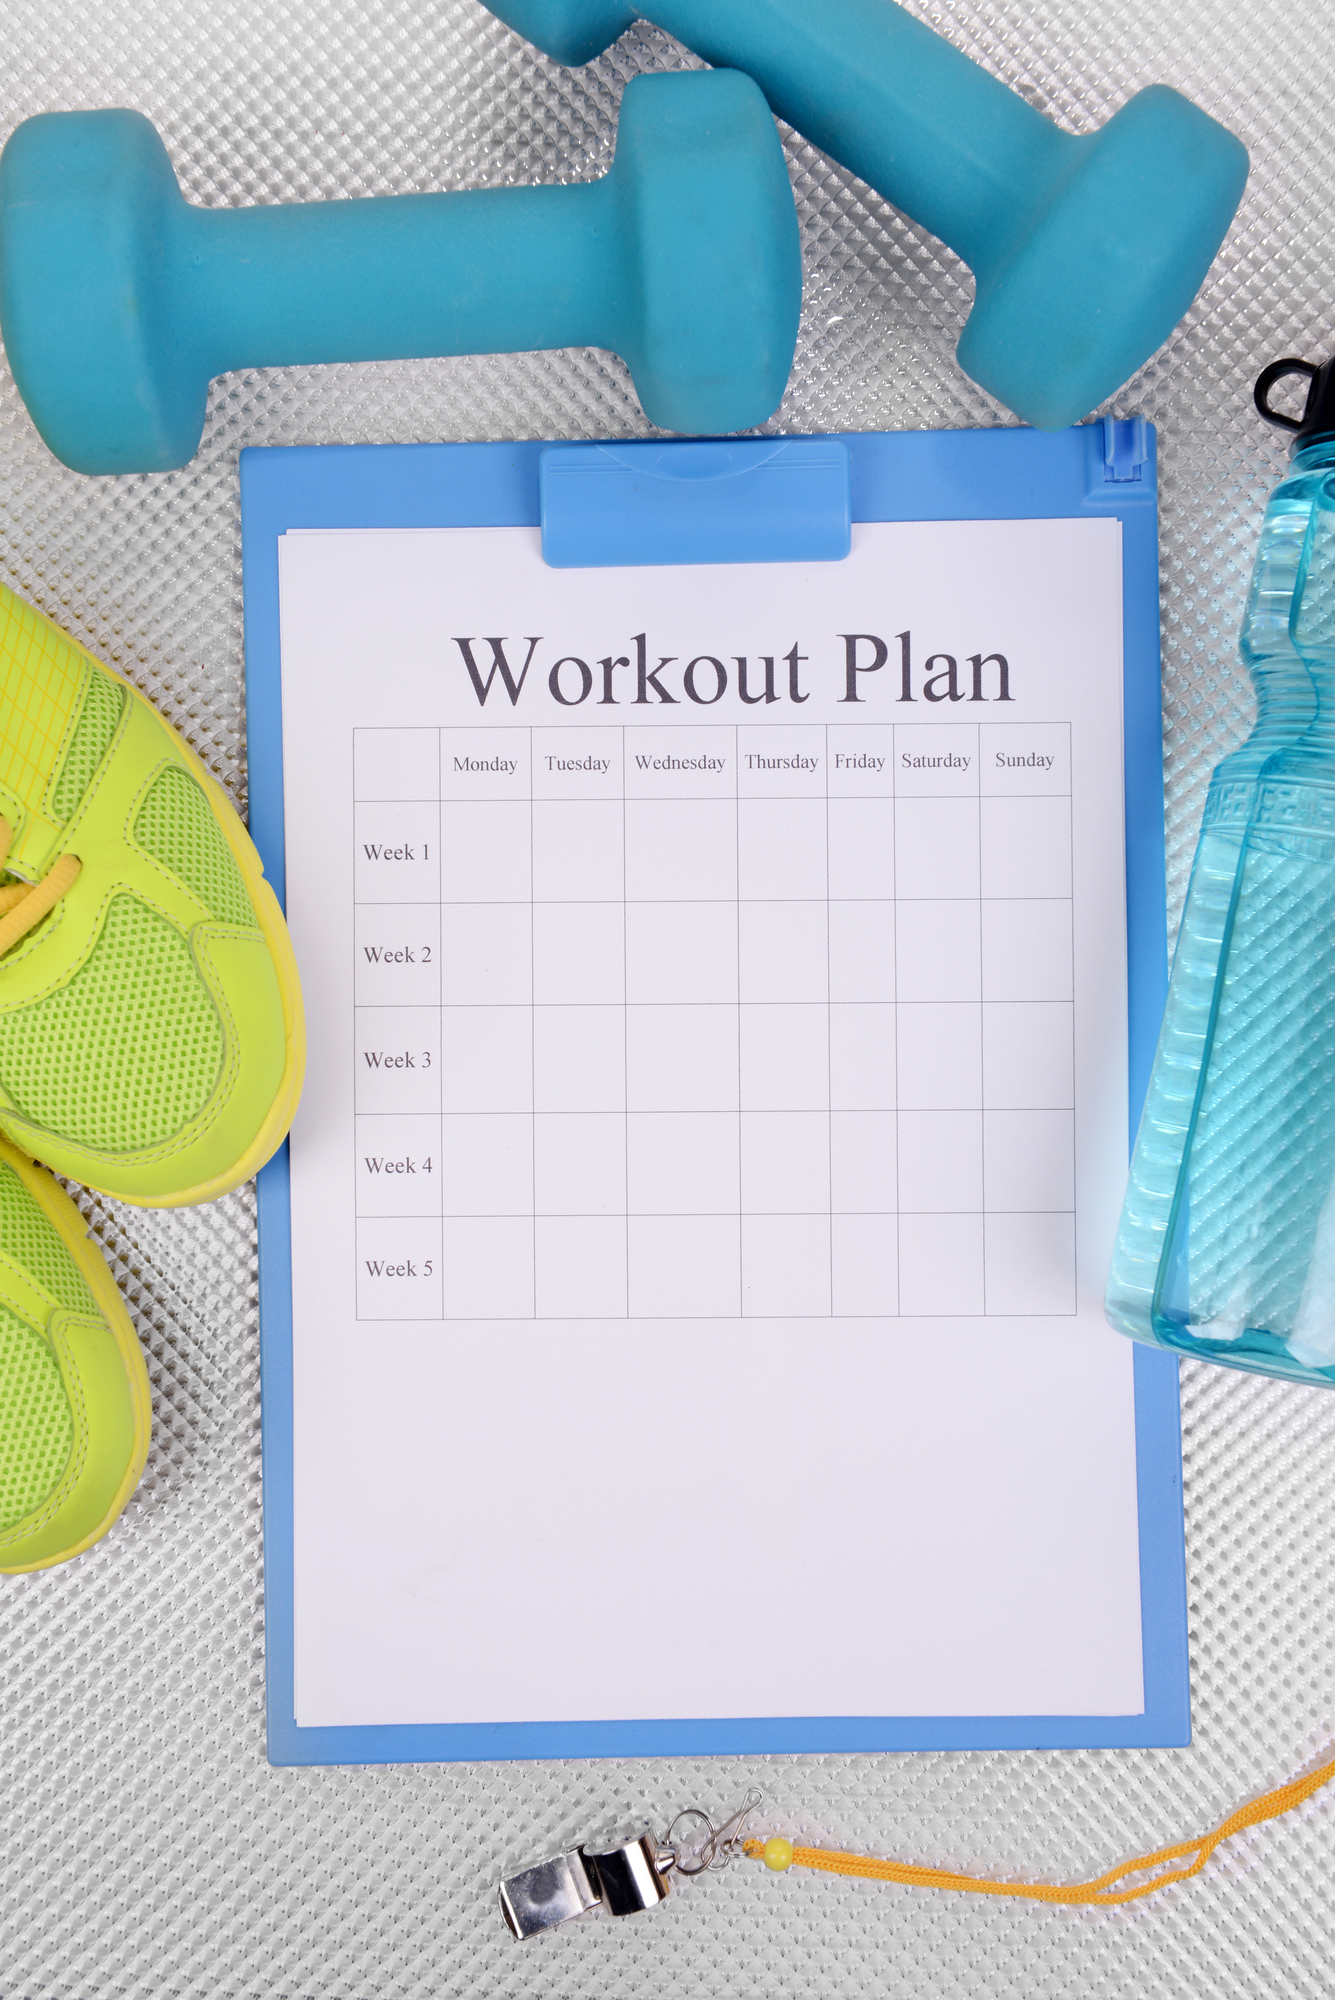 at home workout plan with equipment and workout log